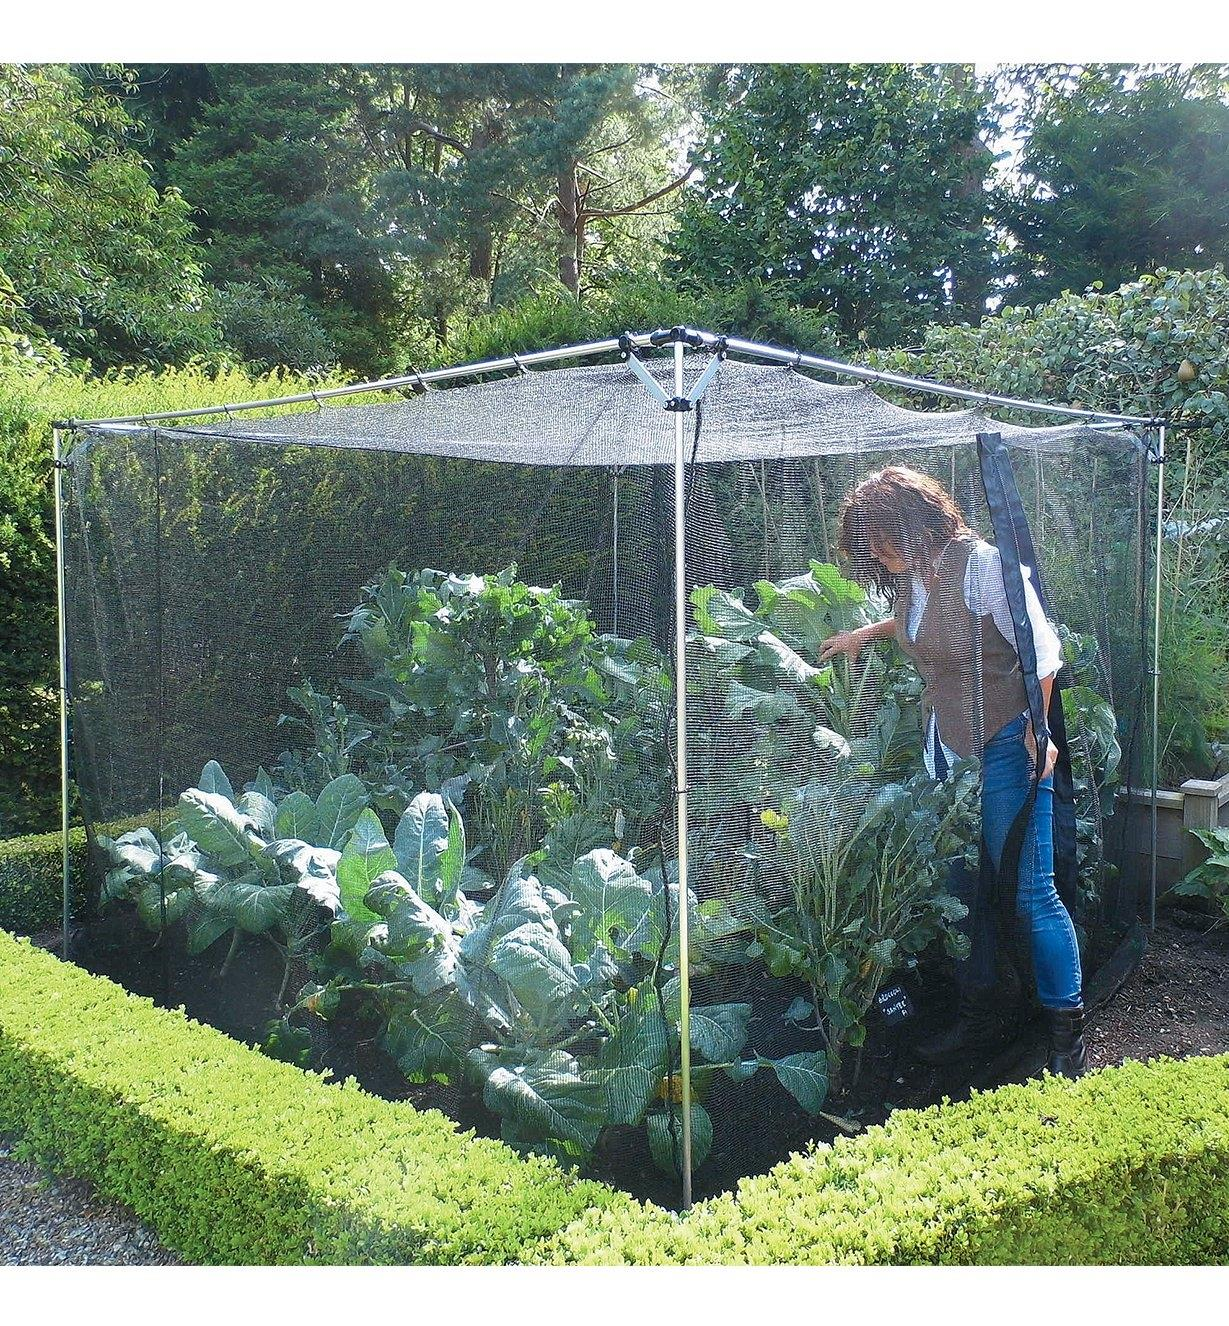 A woman enters the Walk-In Garden Cage, which is filled with plants